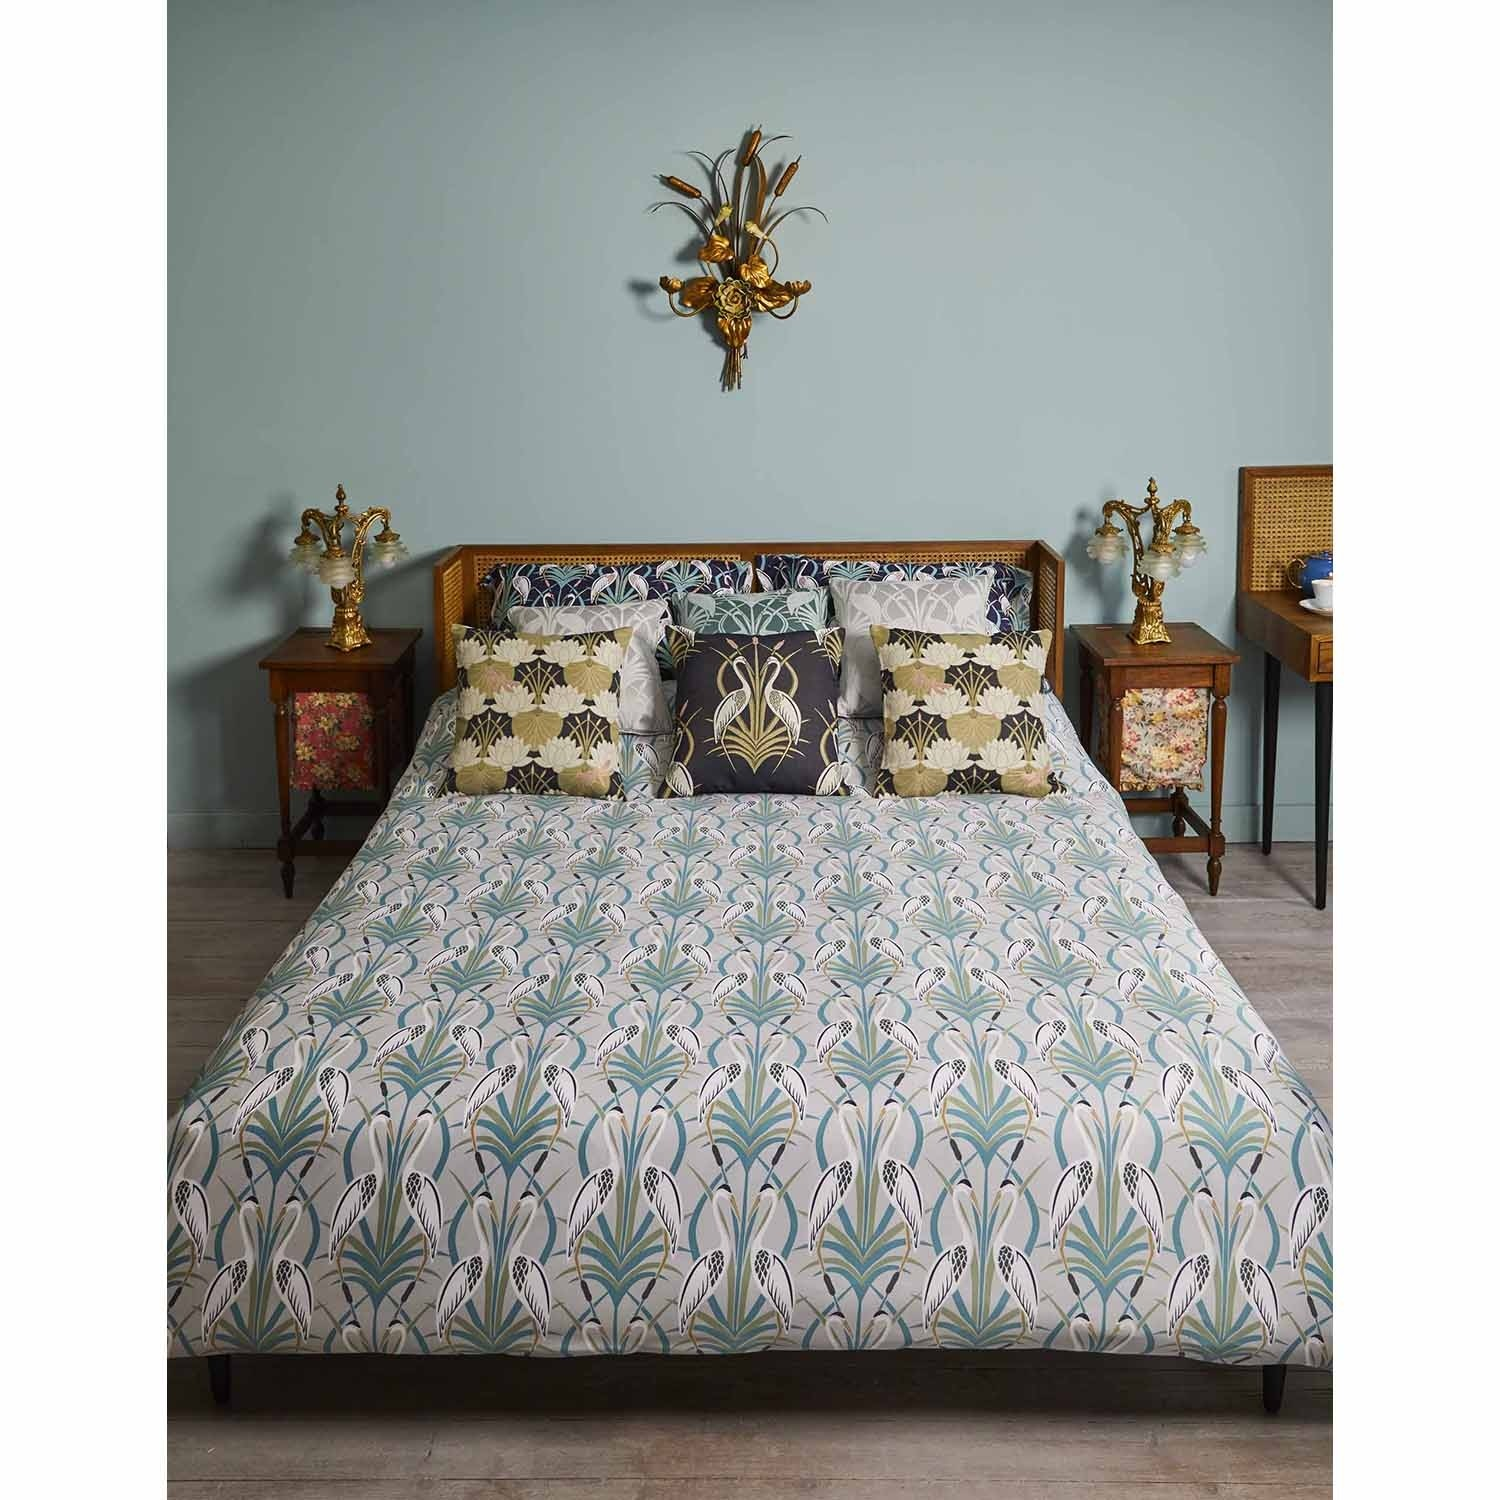 The Chateau By Angel Strawbridge Deco Heron Duvet Set Doub